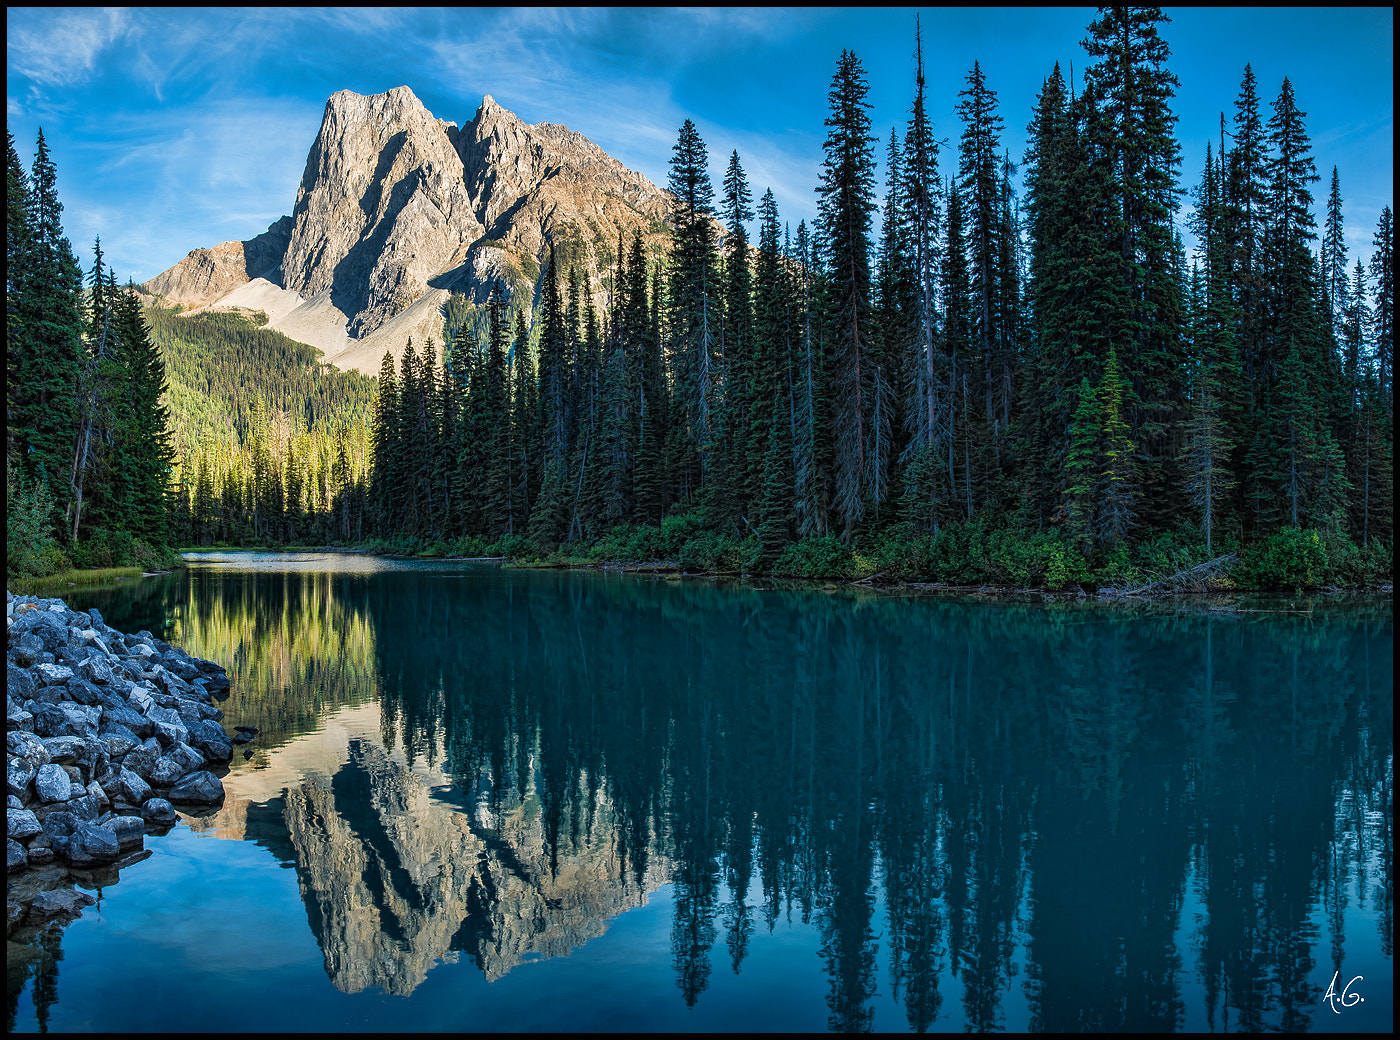 Photograph Reflections of Emerald Lake by Alex Gubski on 500px